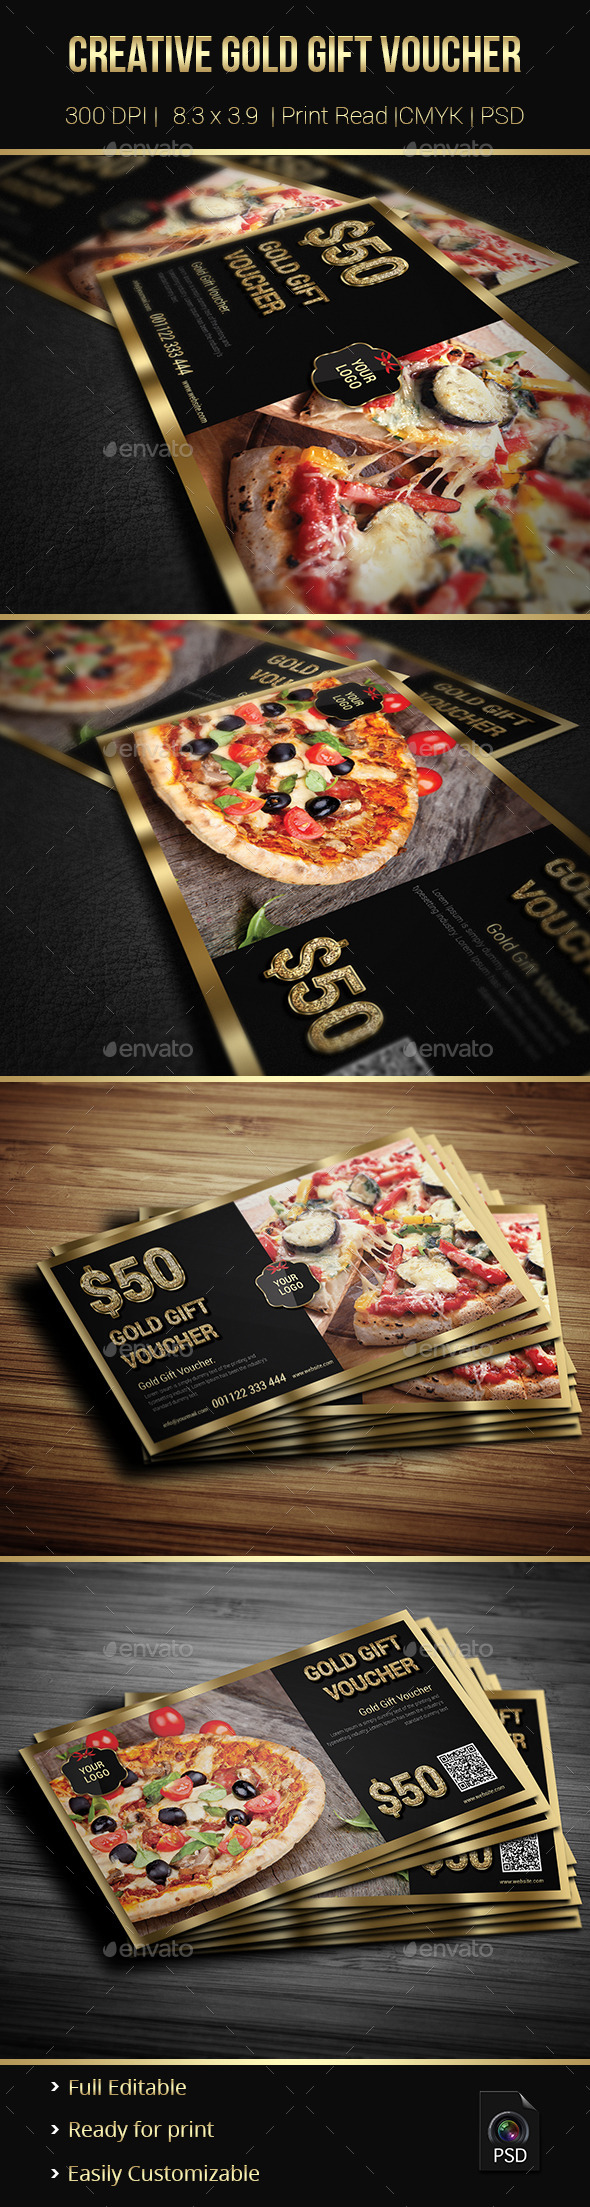 Creative Gold Gift Voucher 02